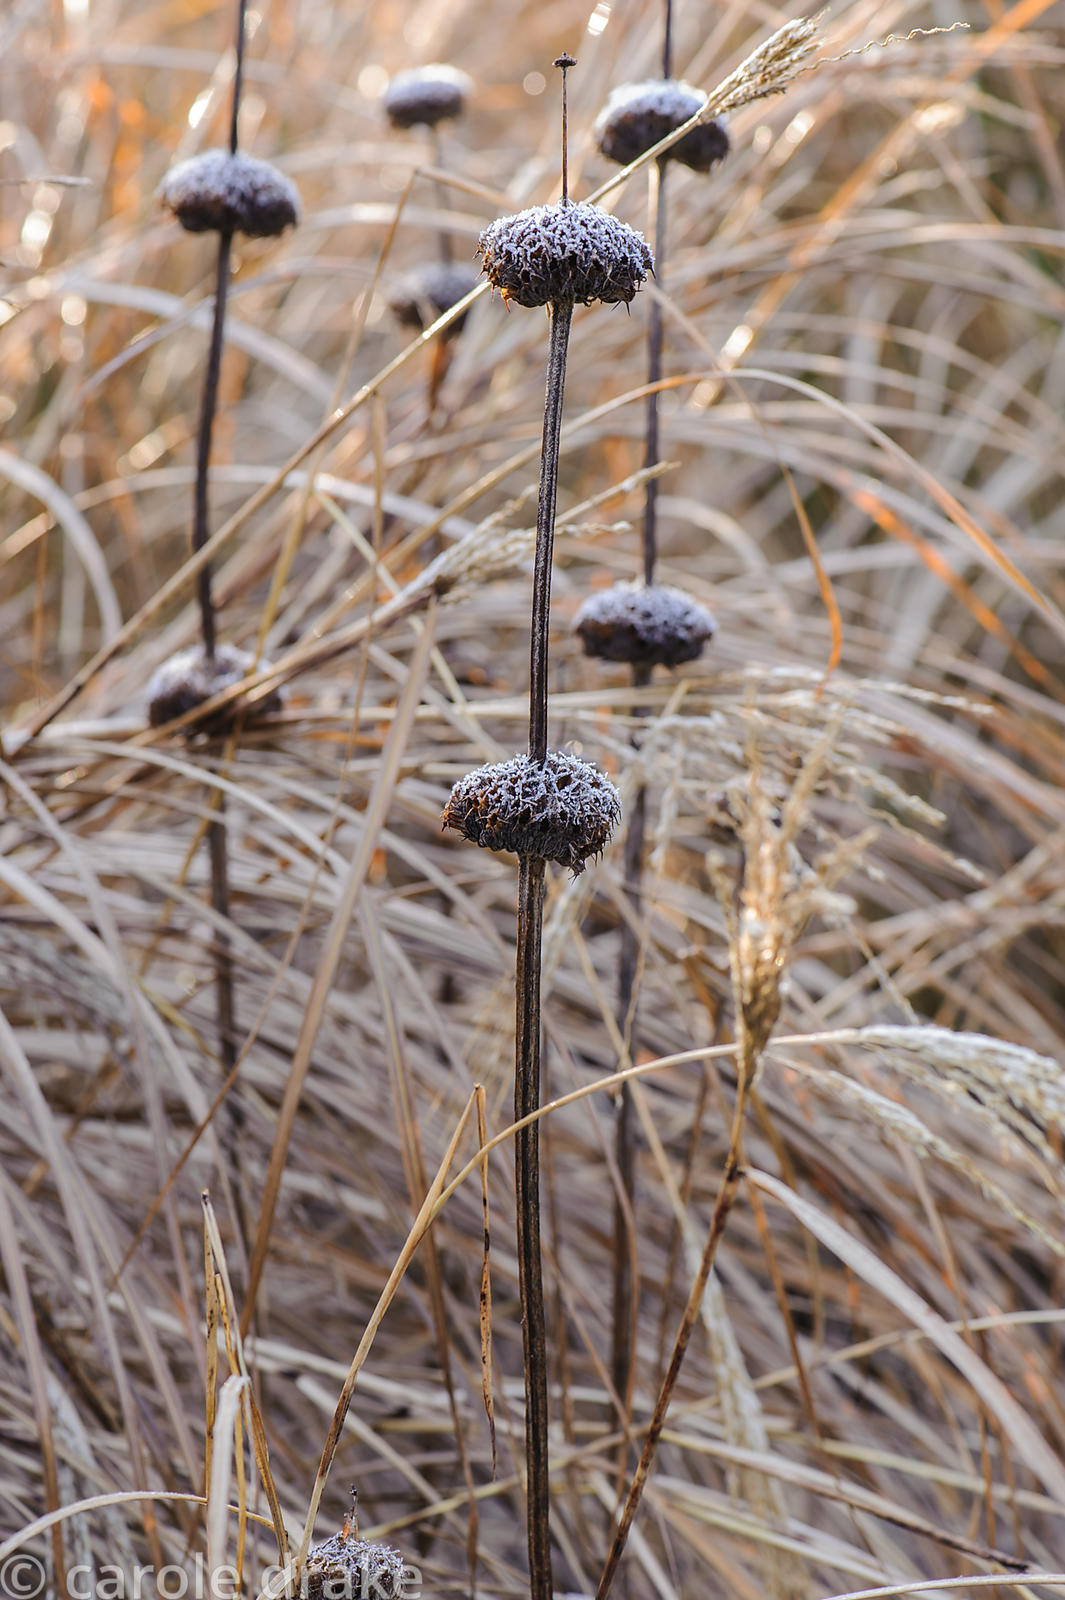 Seedheads of Phlomis russeliana. Sir Harold Hillier Gardens, Ampfield, Romsey, Hants, UK